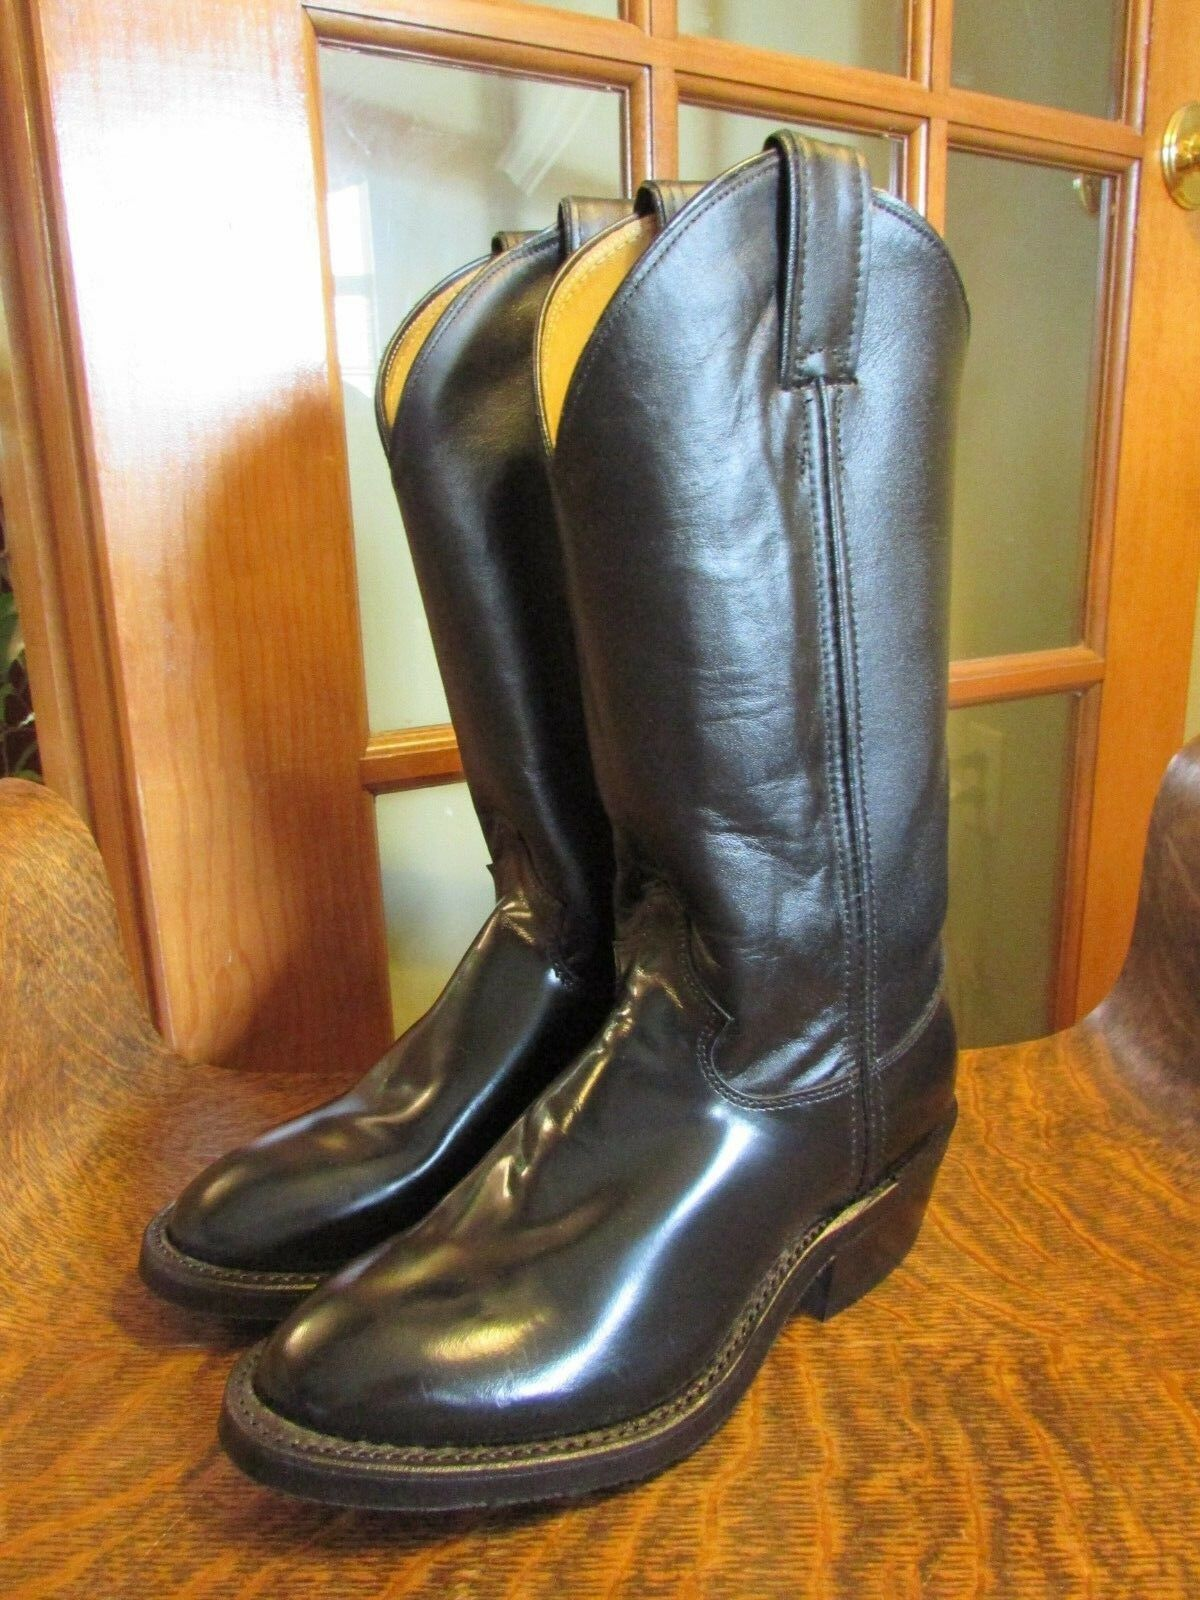 New, JUSTIN Ladies Size Size Size 6.5 Black Leather Melo-Veal Western Cowboy Boots, M6637 8accd8